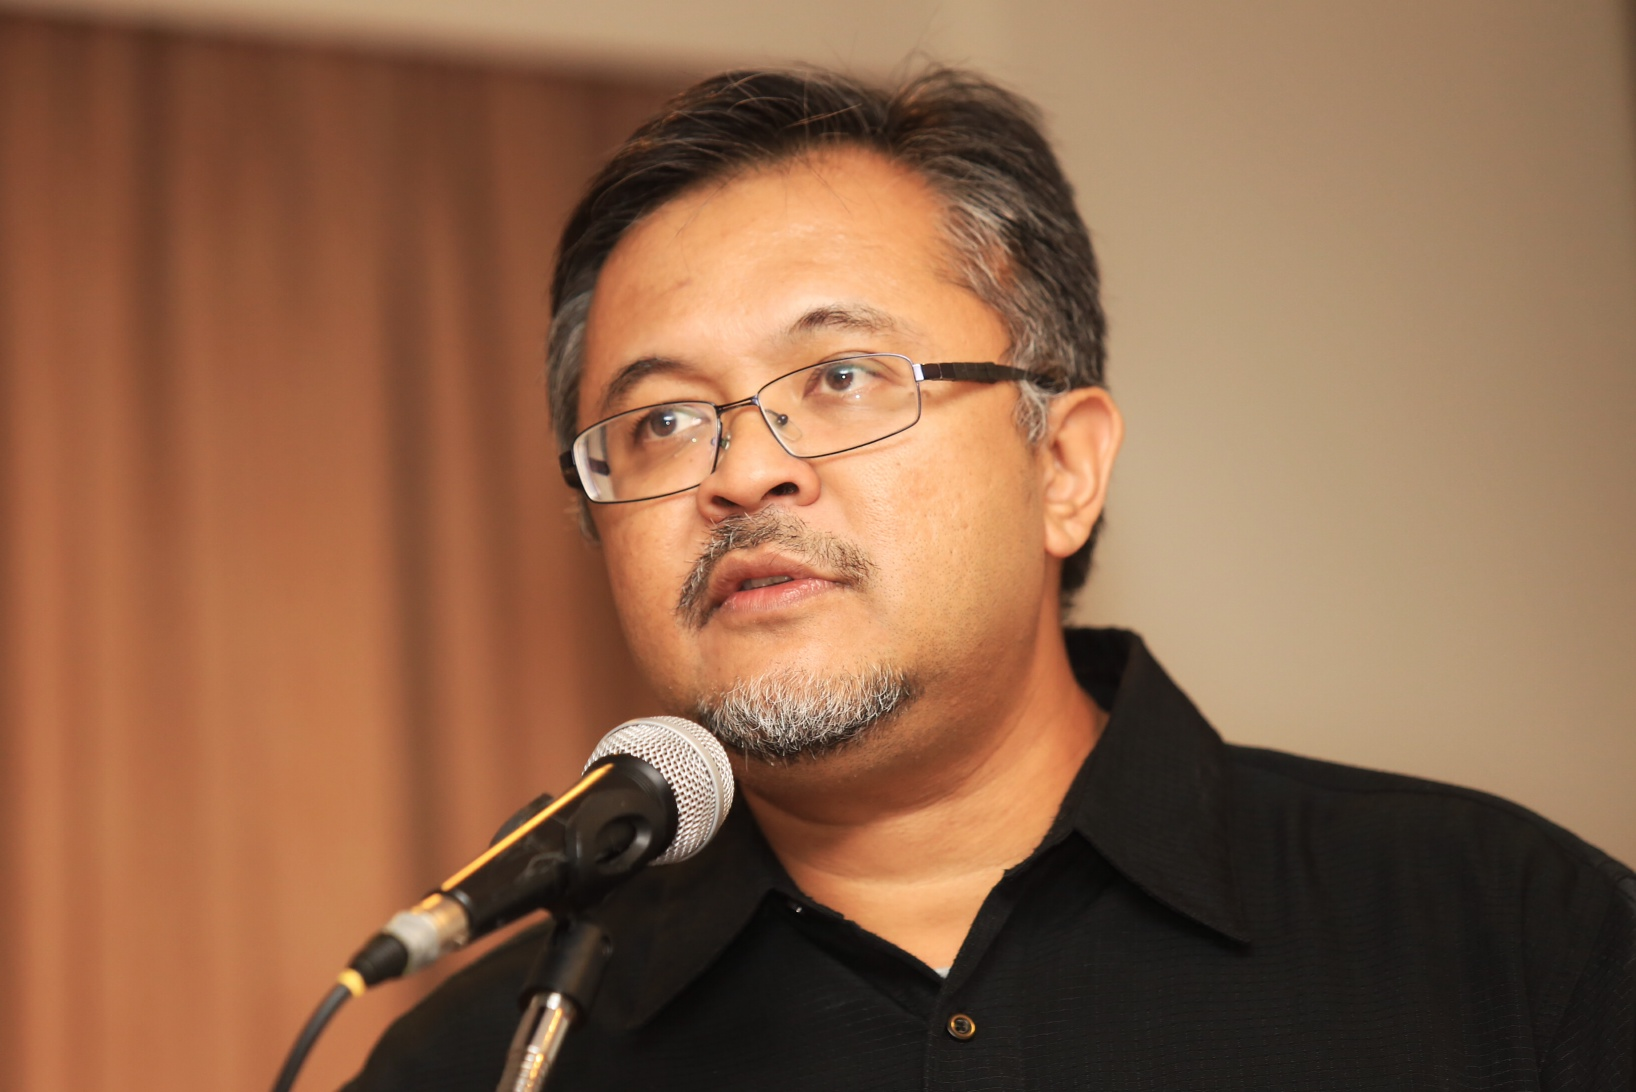 Ibrahim Suffian of independent pollster Merdeka Center said interest among members of the public in the opposition cooled after the 2013 election. ― Picture by Saw Siow Feng